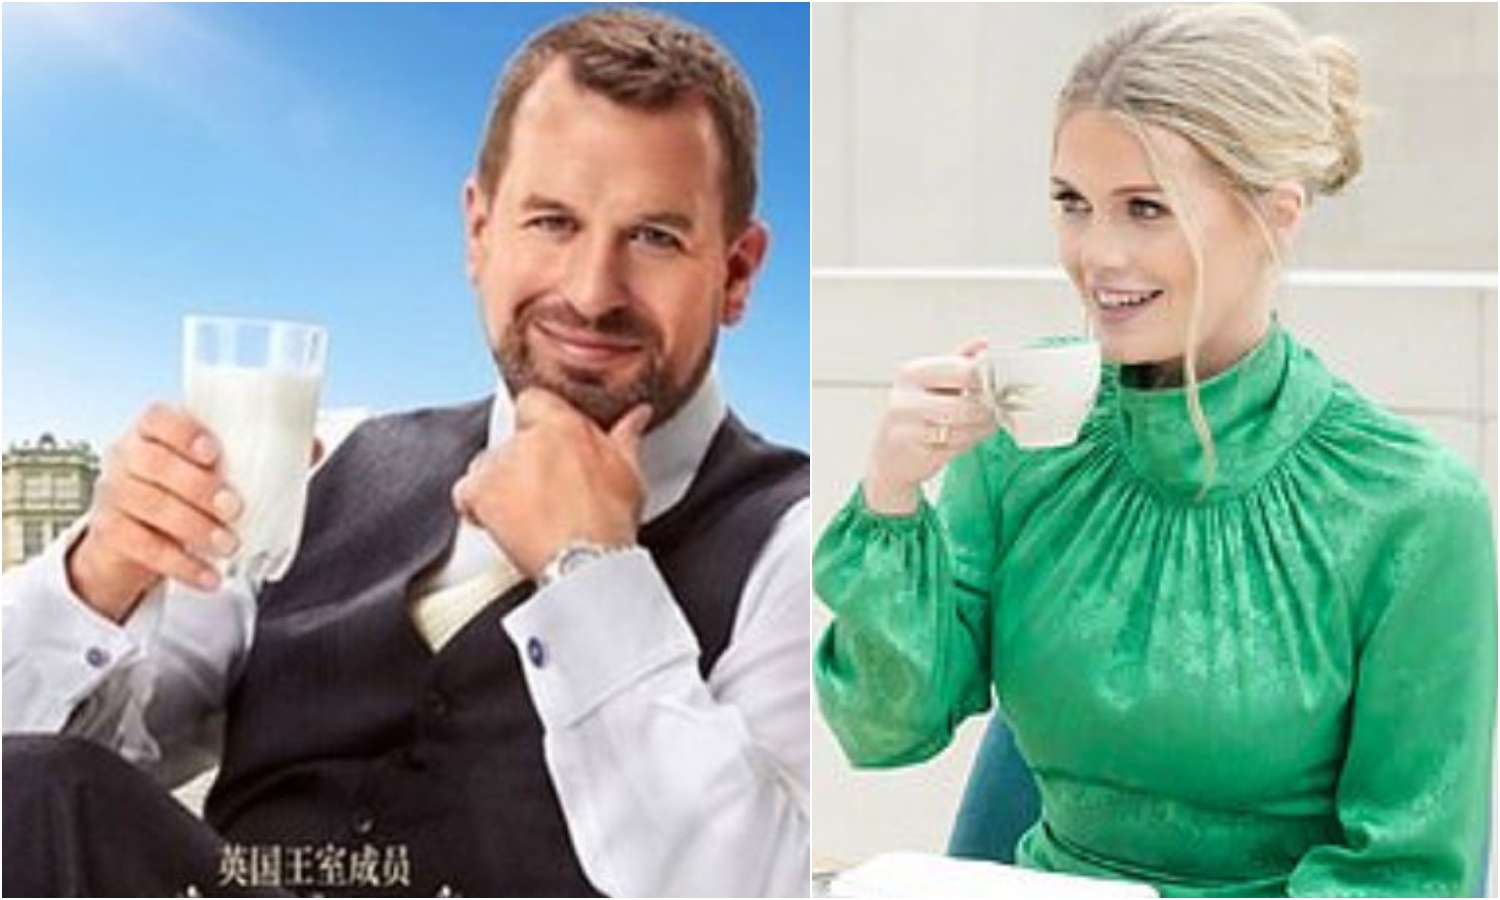 Queen's grandson and Diana's niece milking royal connections in Chinese ads - New Idea